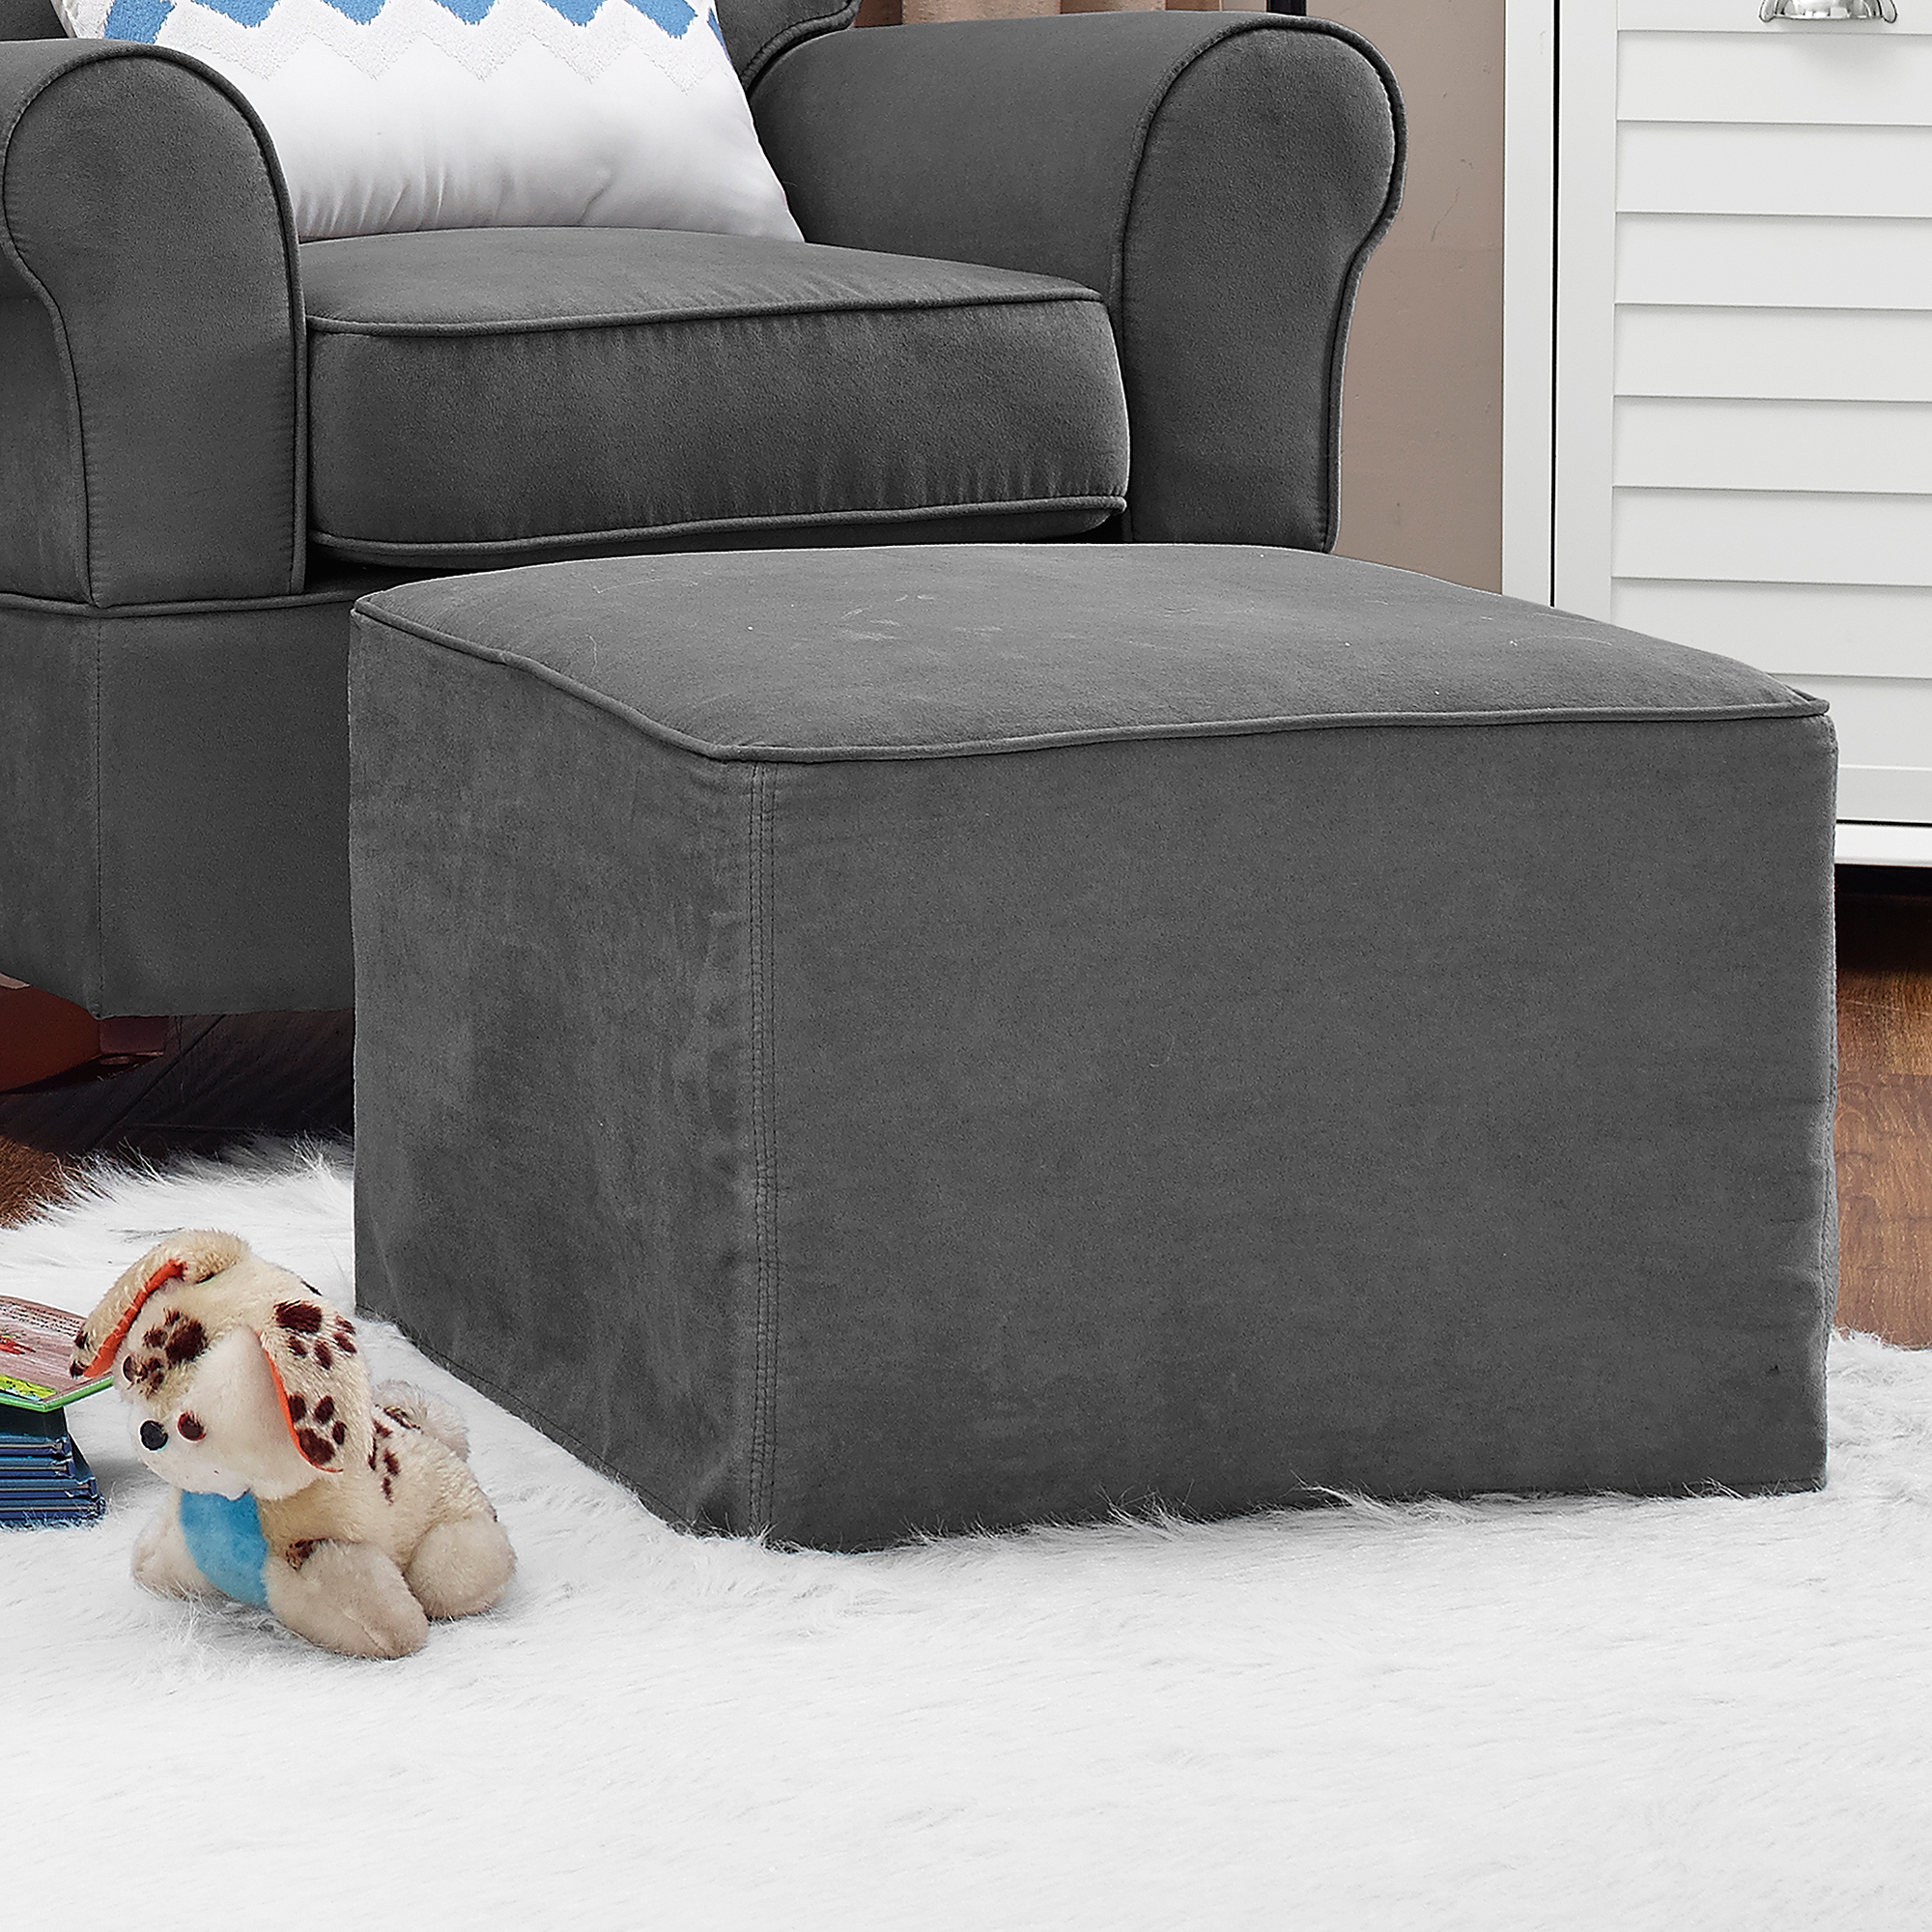 Baby Relax Mackenzie Ottoman, Choose Your Color